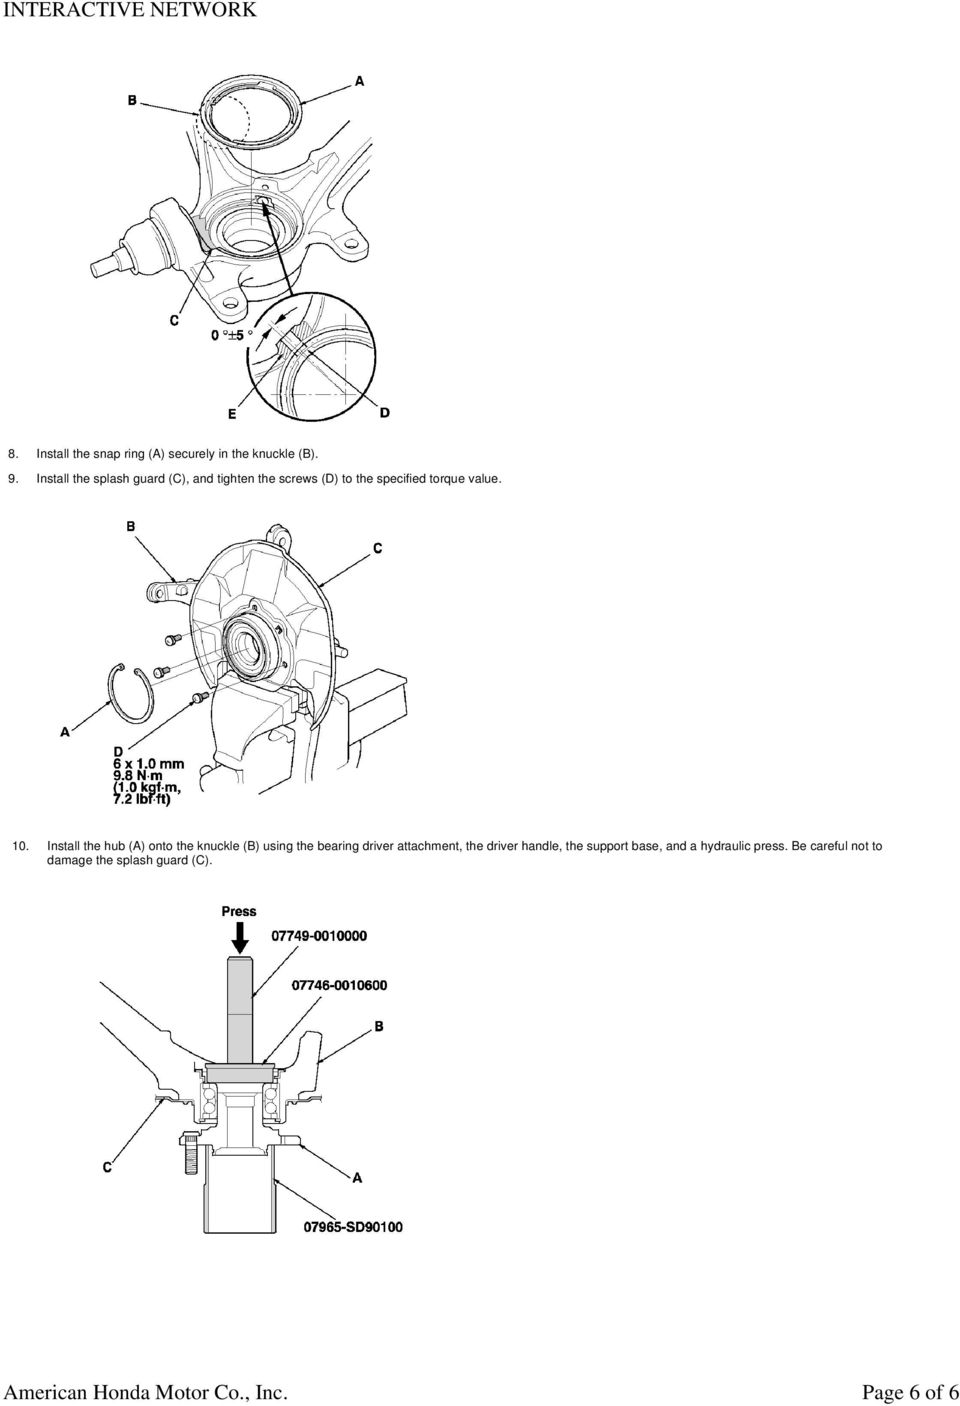 Install the hub (A) onto the knuckle (B) using the bearing driver attachment, the driver